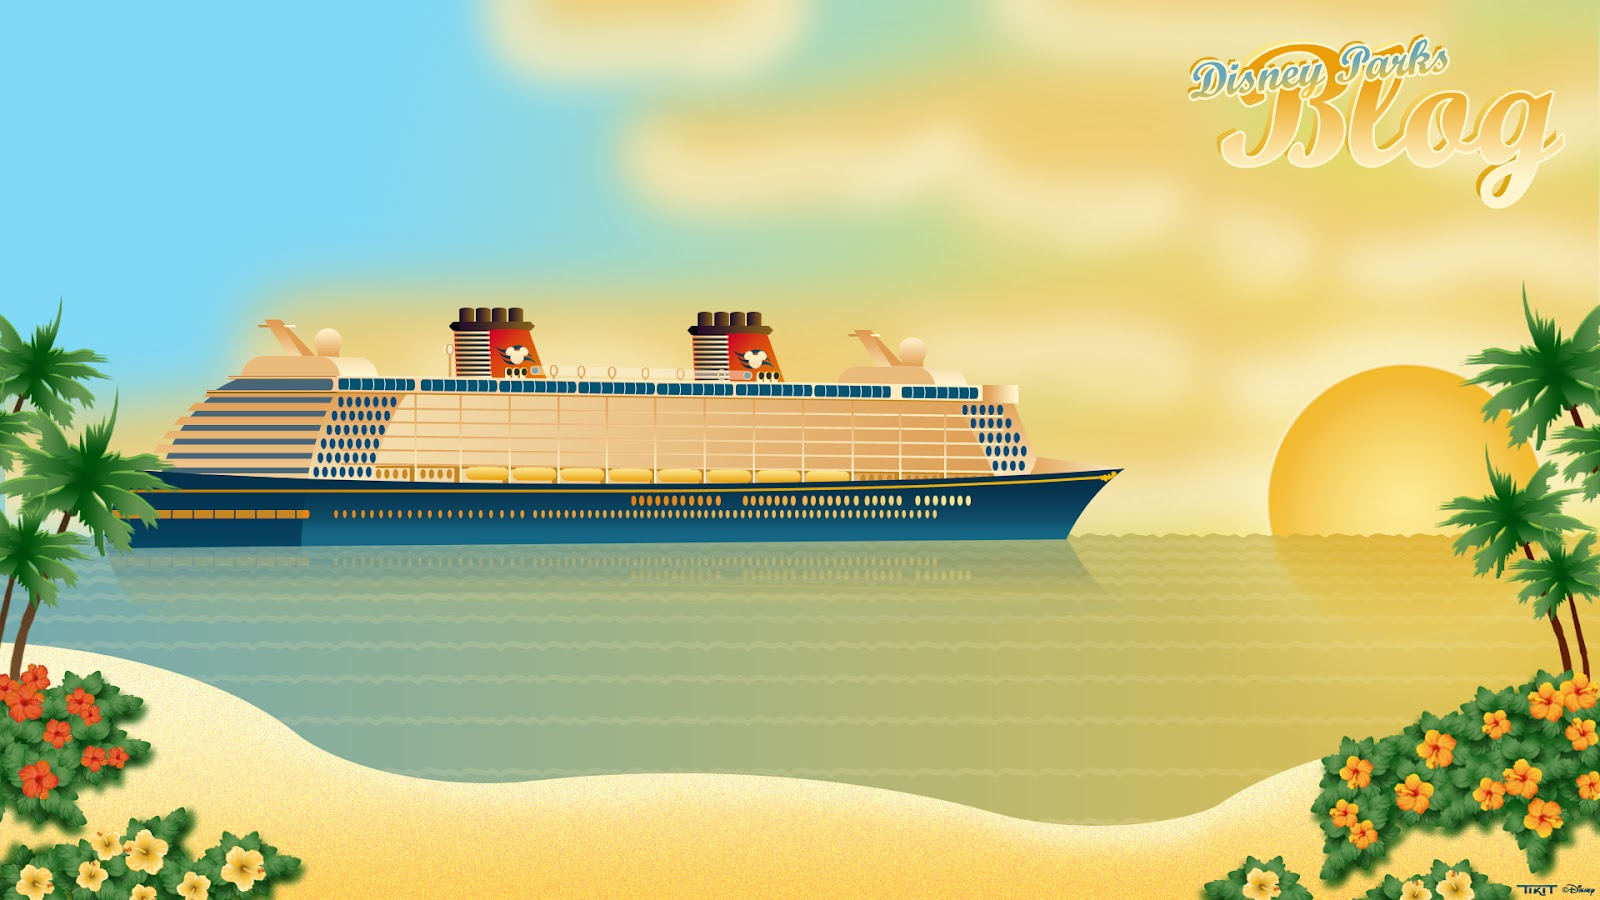 Tiki Tackett Disney Fantasy Wallpaper on the Disney Parks Blog 1600x900